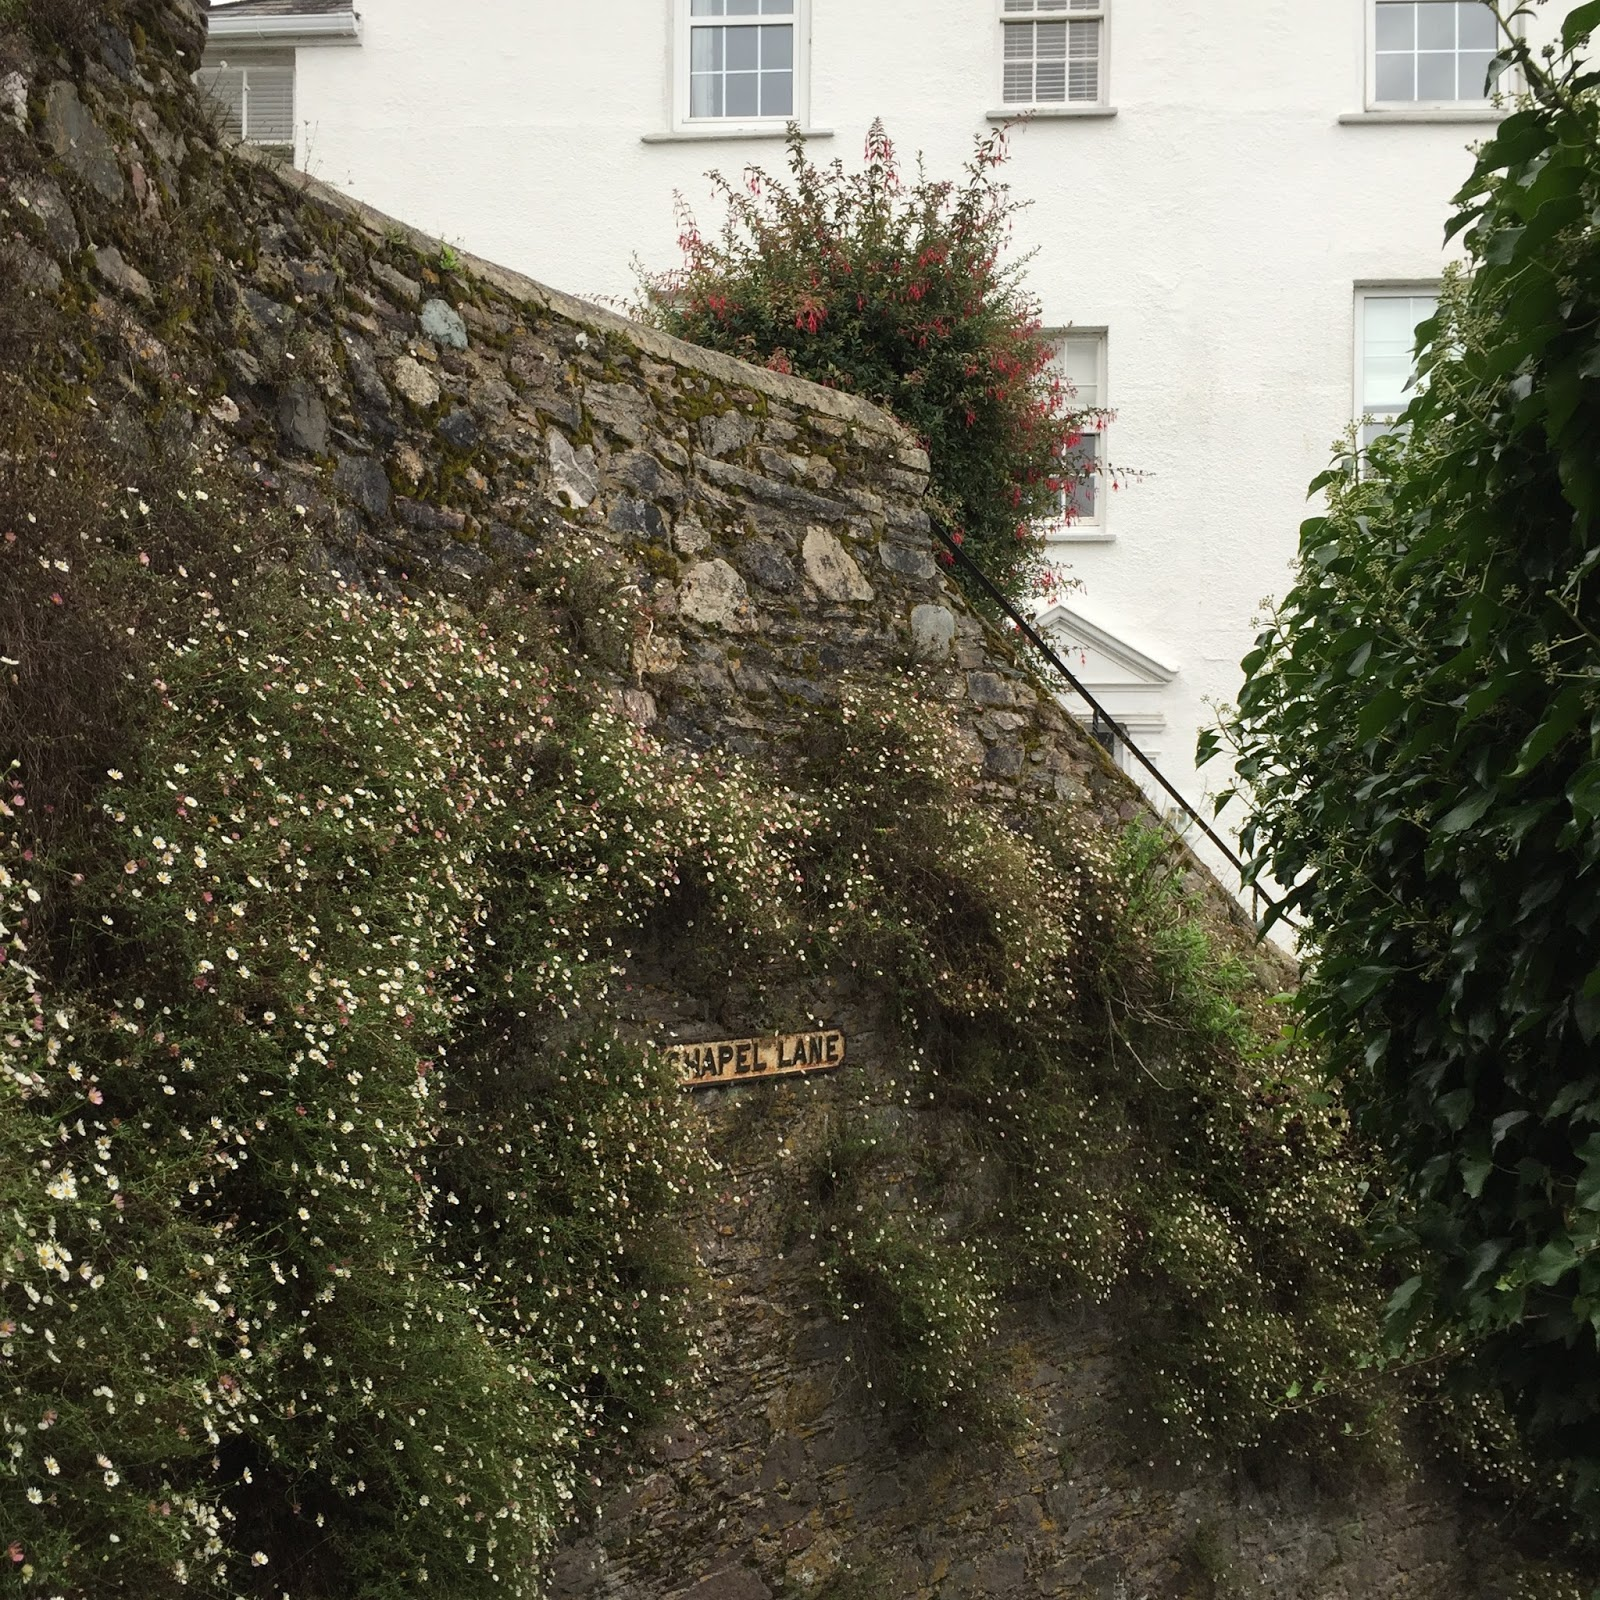 Chapel Lane Dartmouth stairs